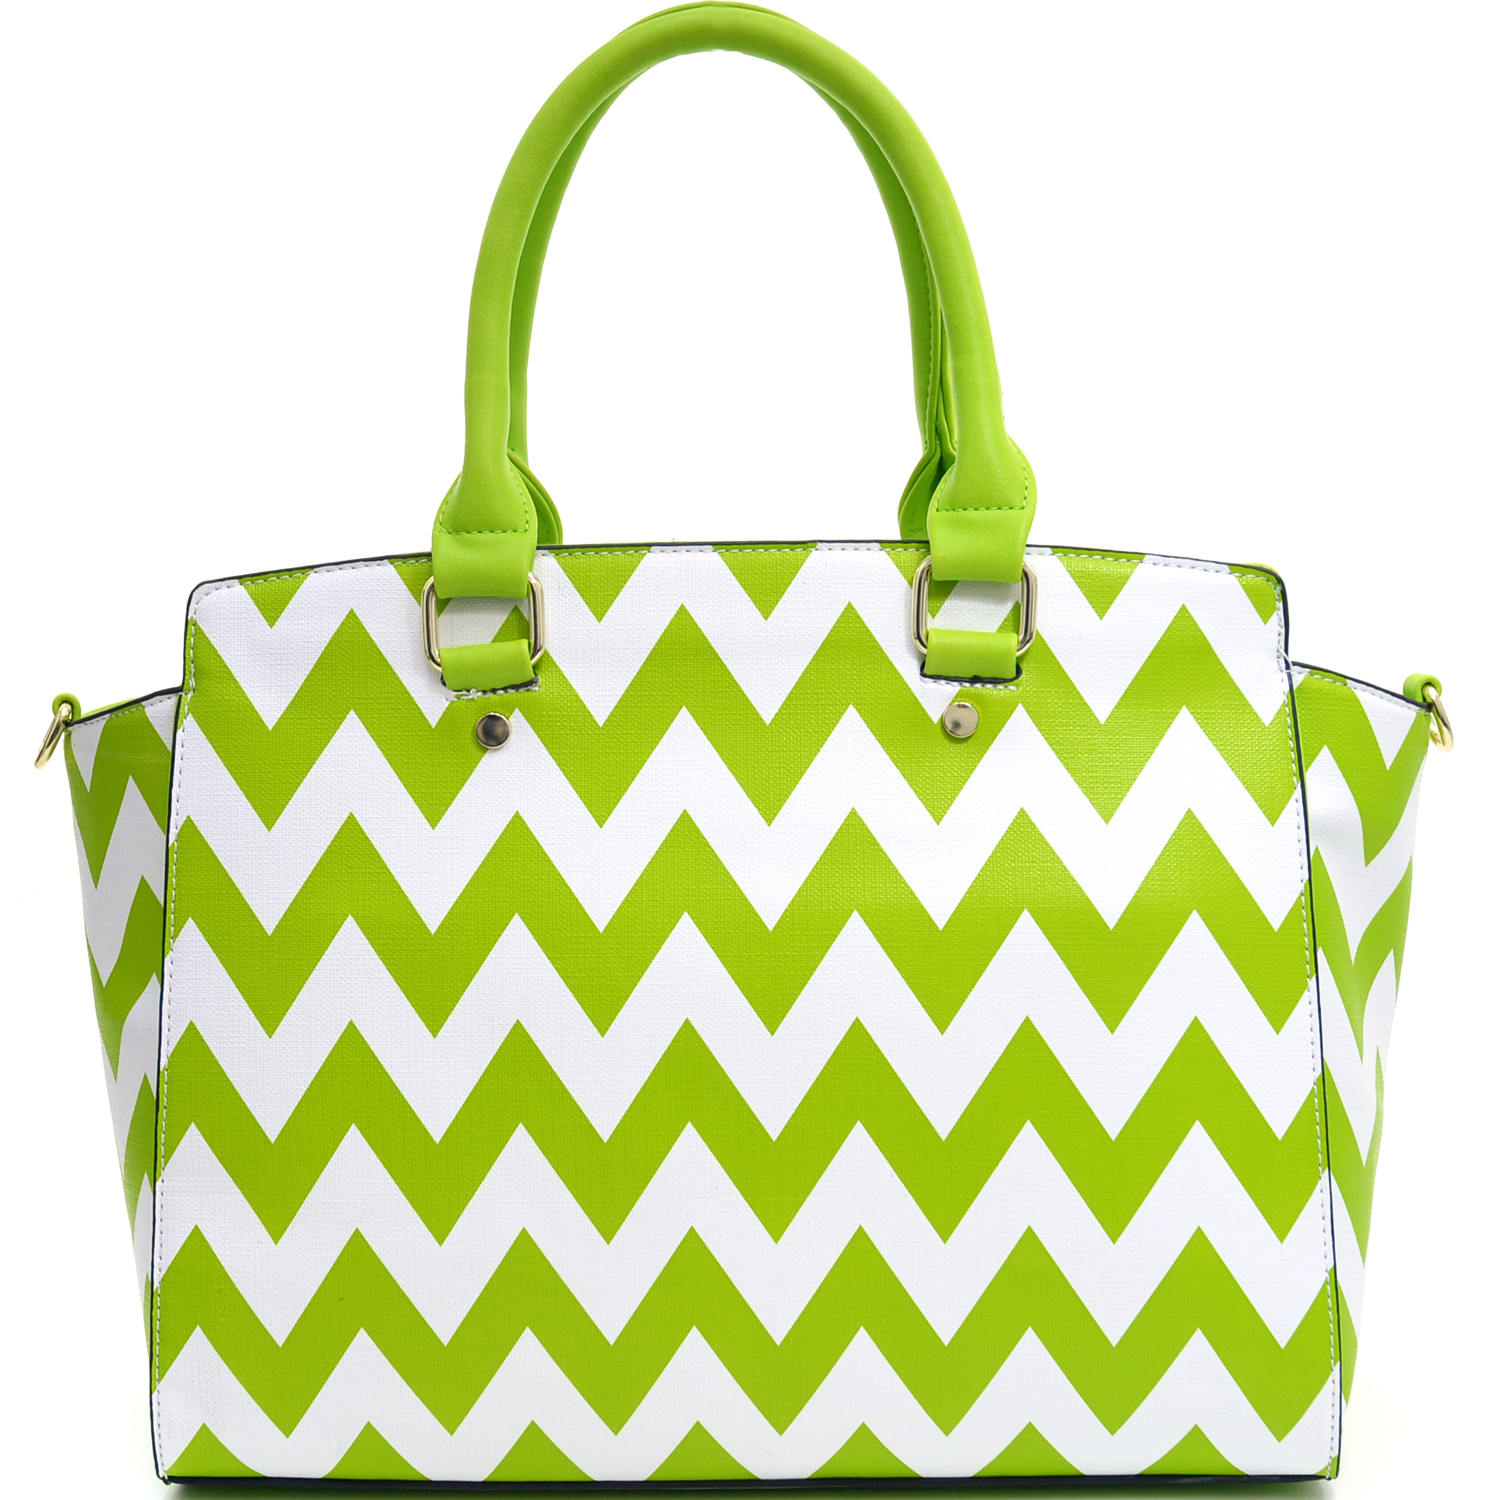 Chevron Printed Winged Tote